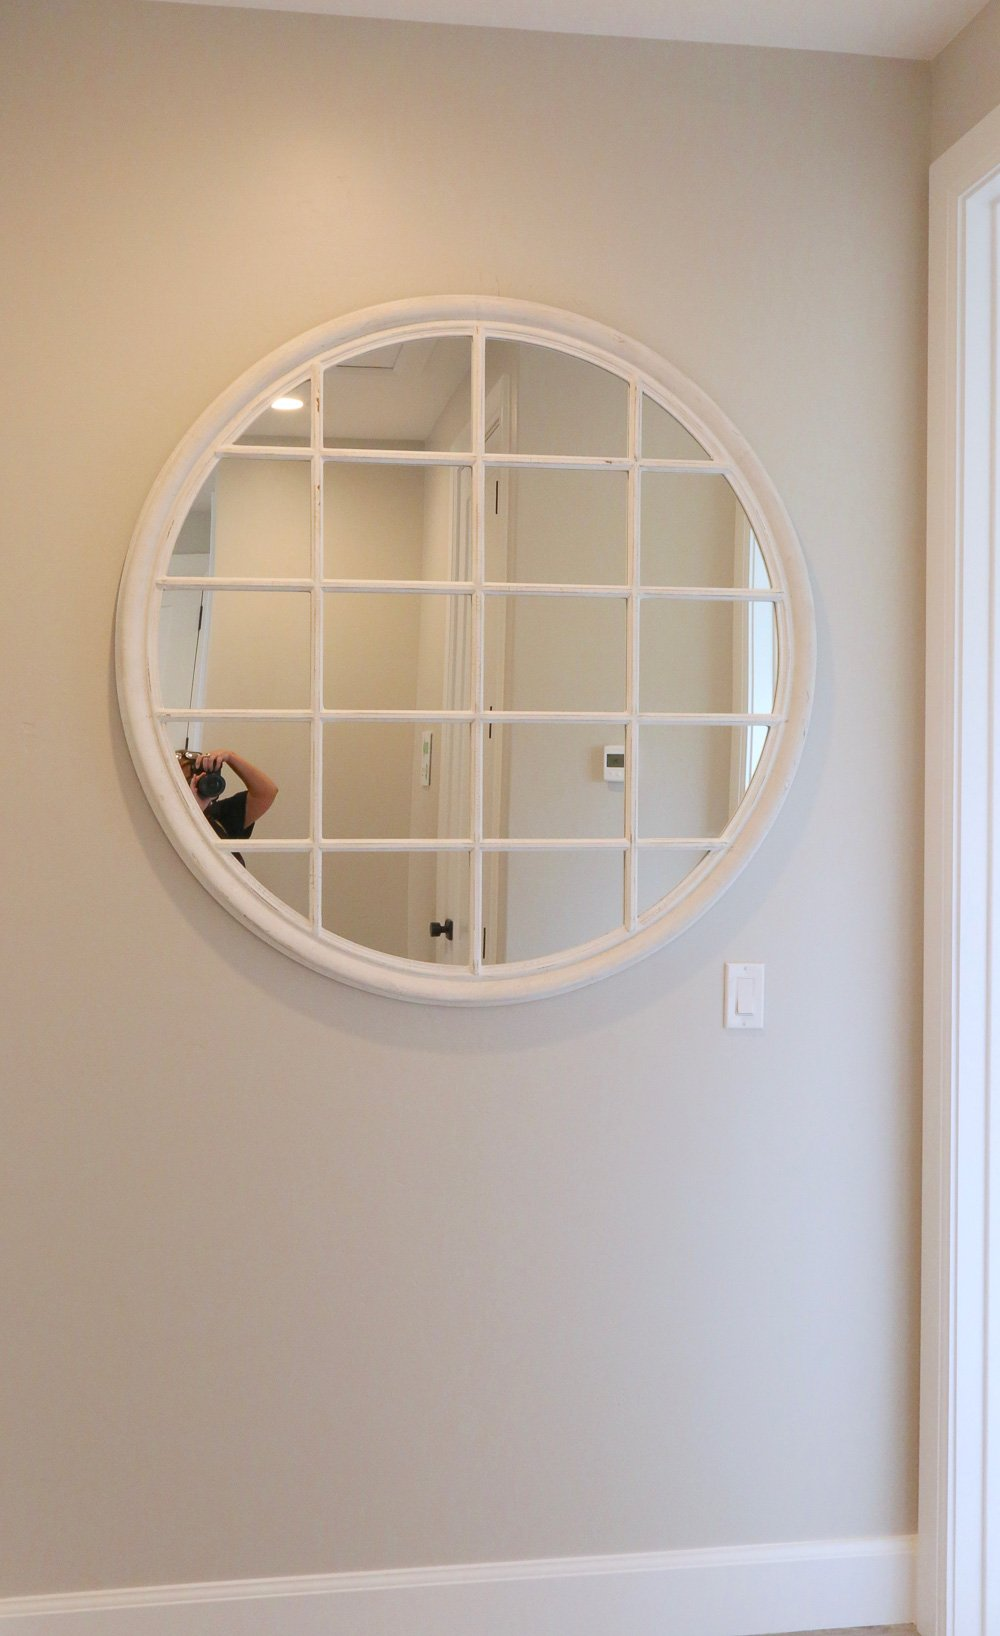 Round mirror window pane